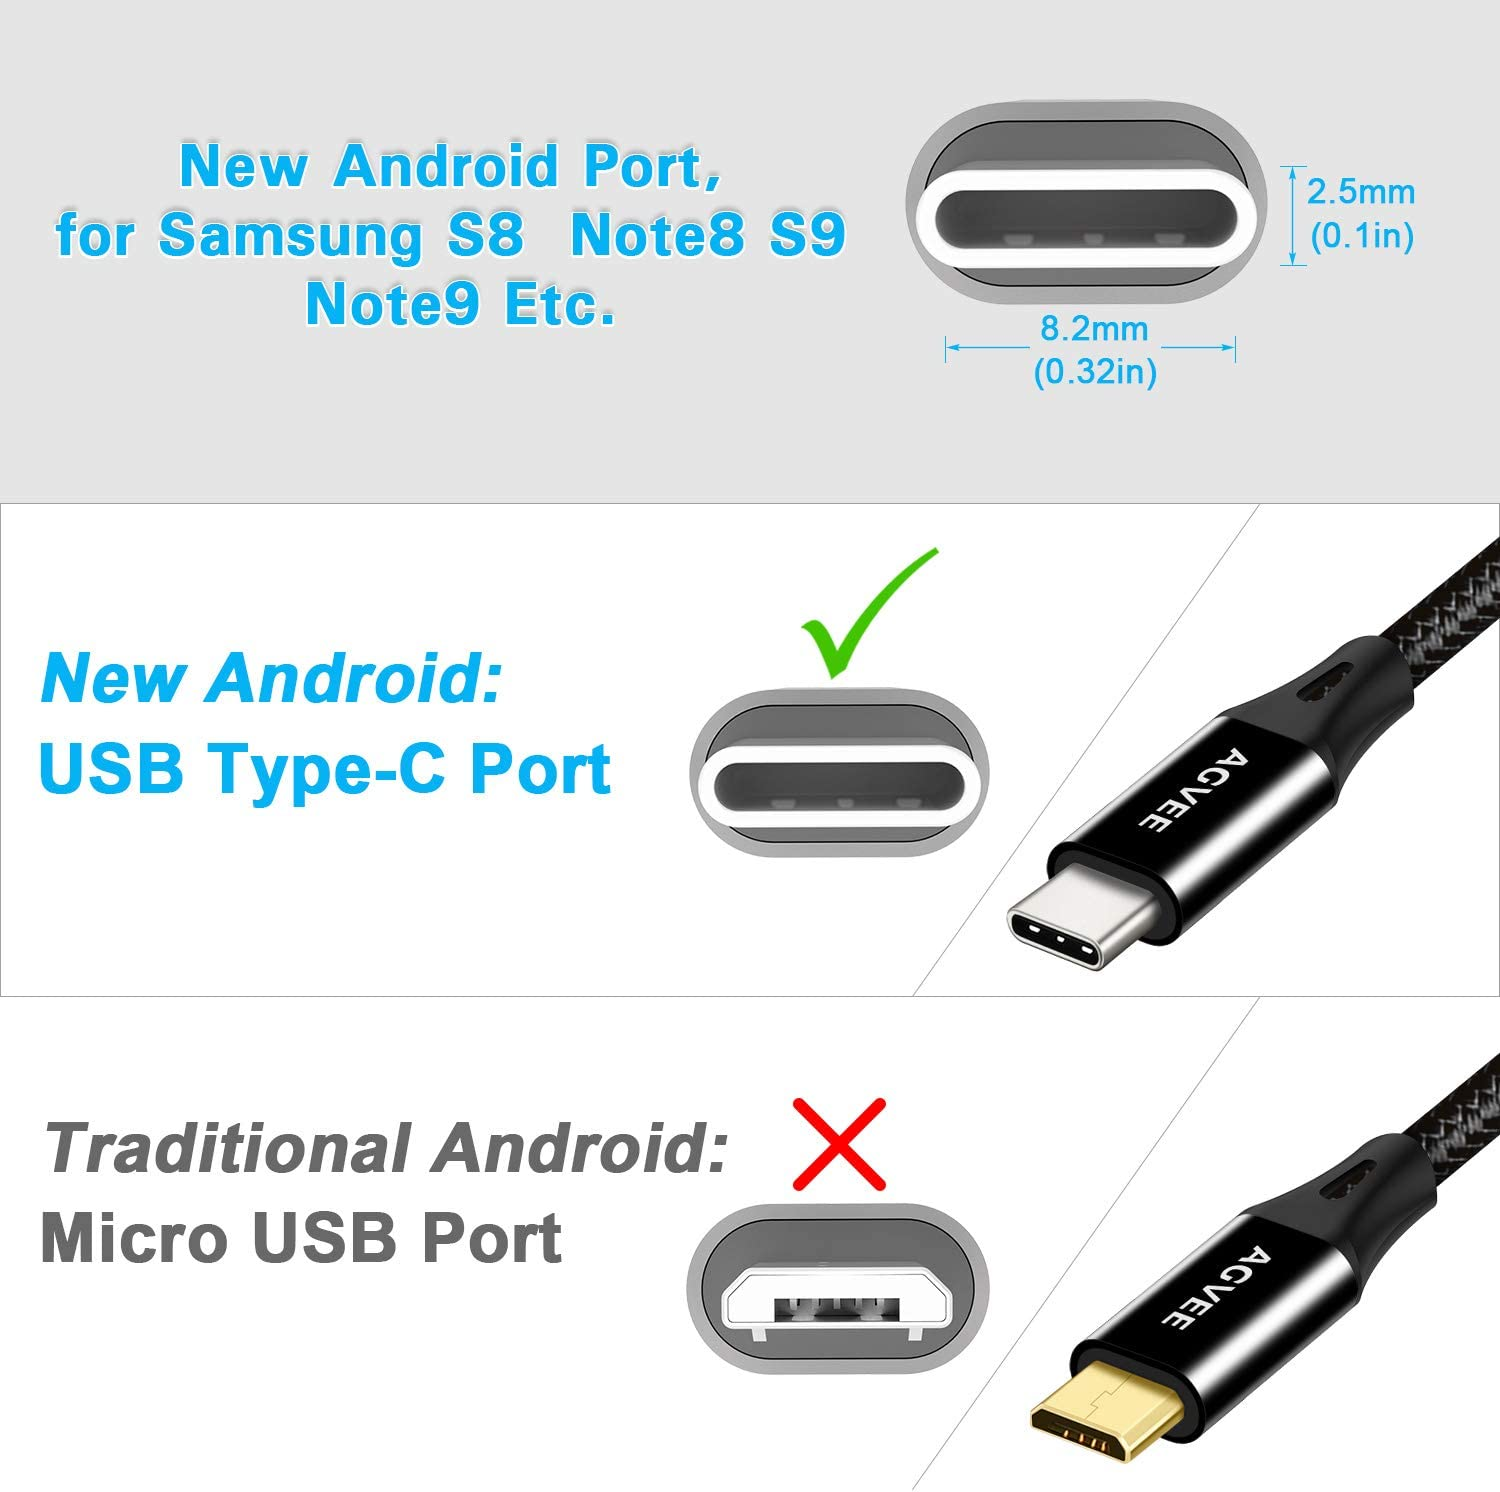 Pixel 3 3XL Black Agvee 3A Fast USB-C Charger Cable 4 Pack 1ft 3ft 6ft 10ft A10e A20 A20e Braided Type-C Charging Cord for Samsung Galaxy S10 S9 S 8 Note 9 8 LG V20 V30 Seamless USBC Tip